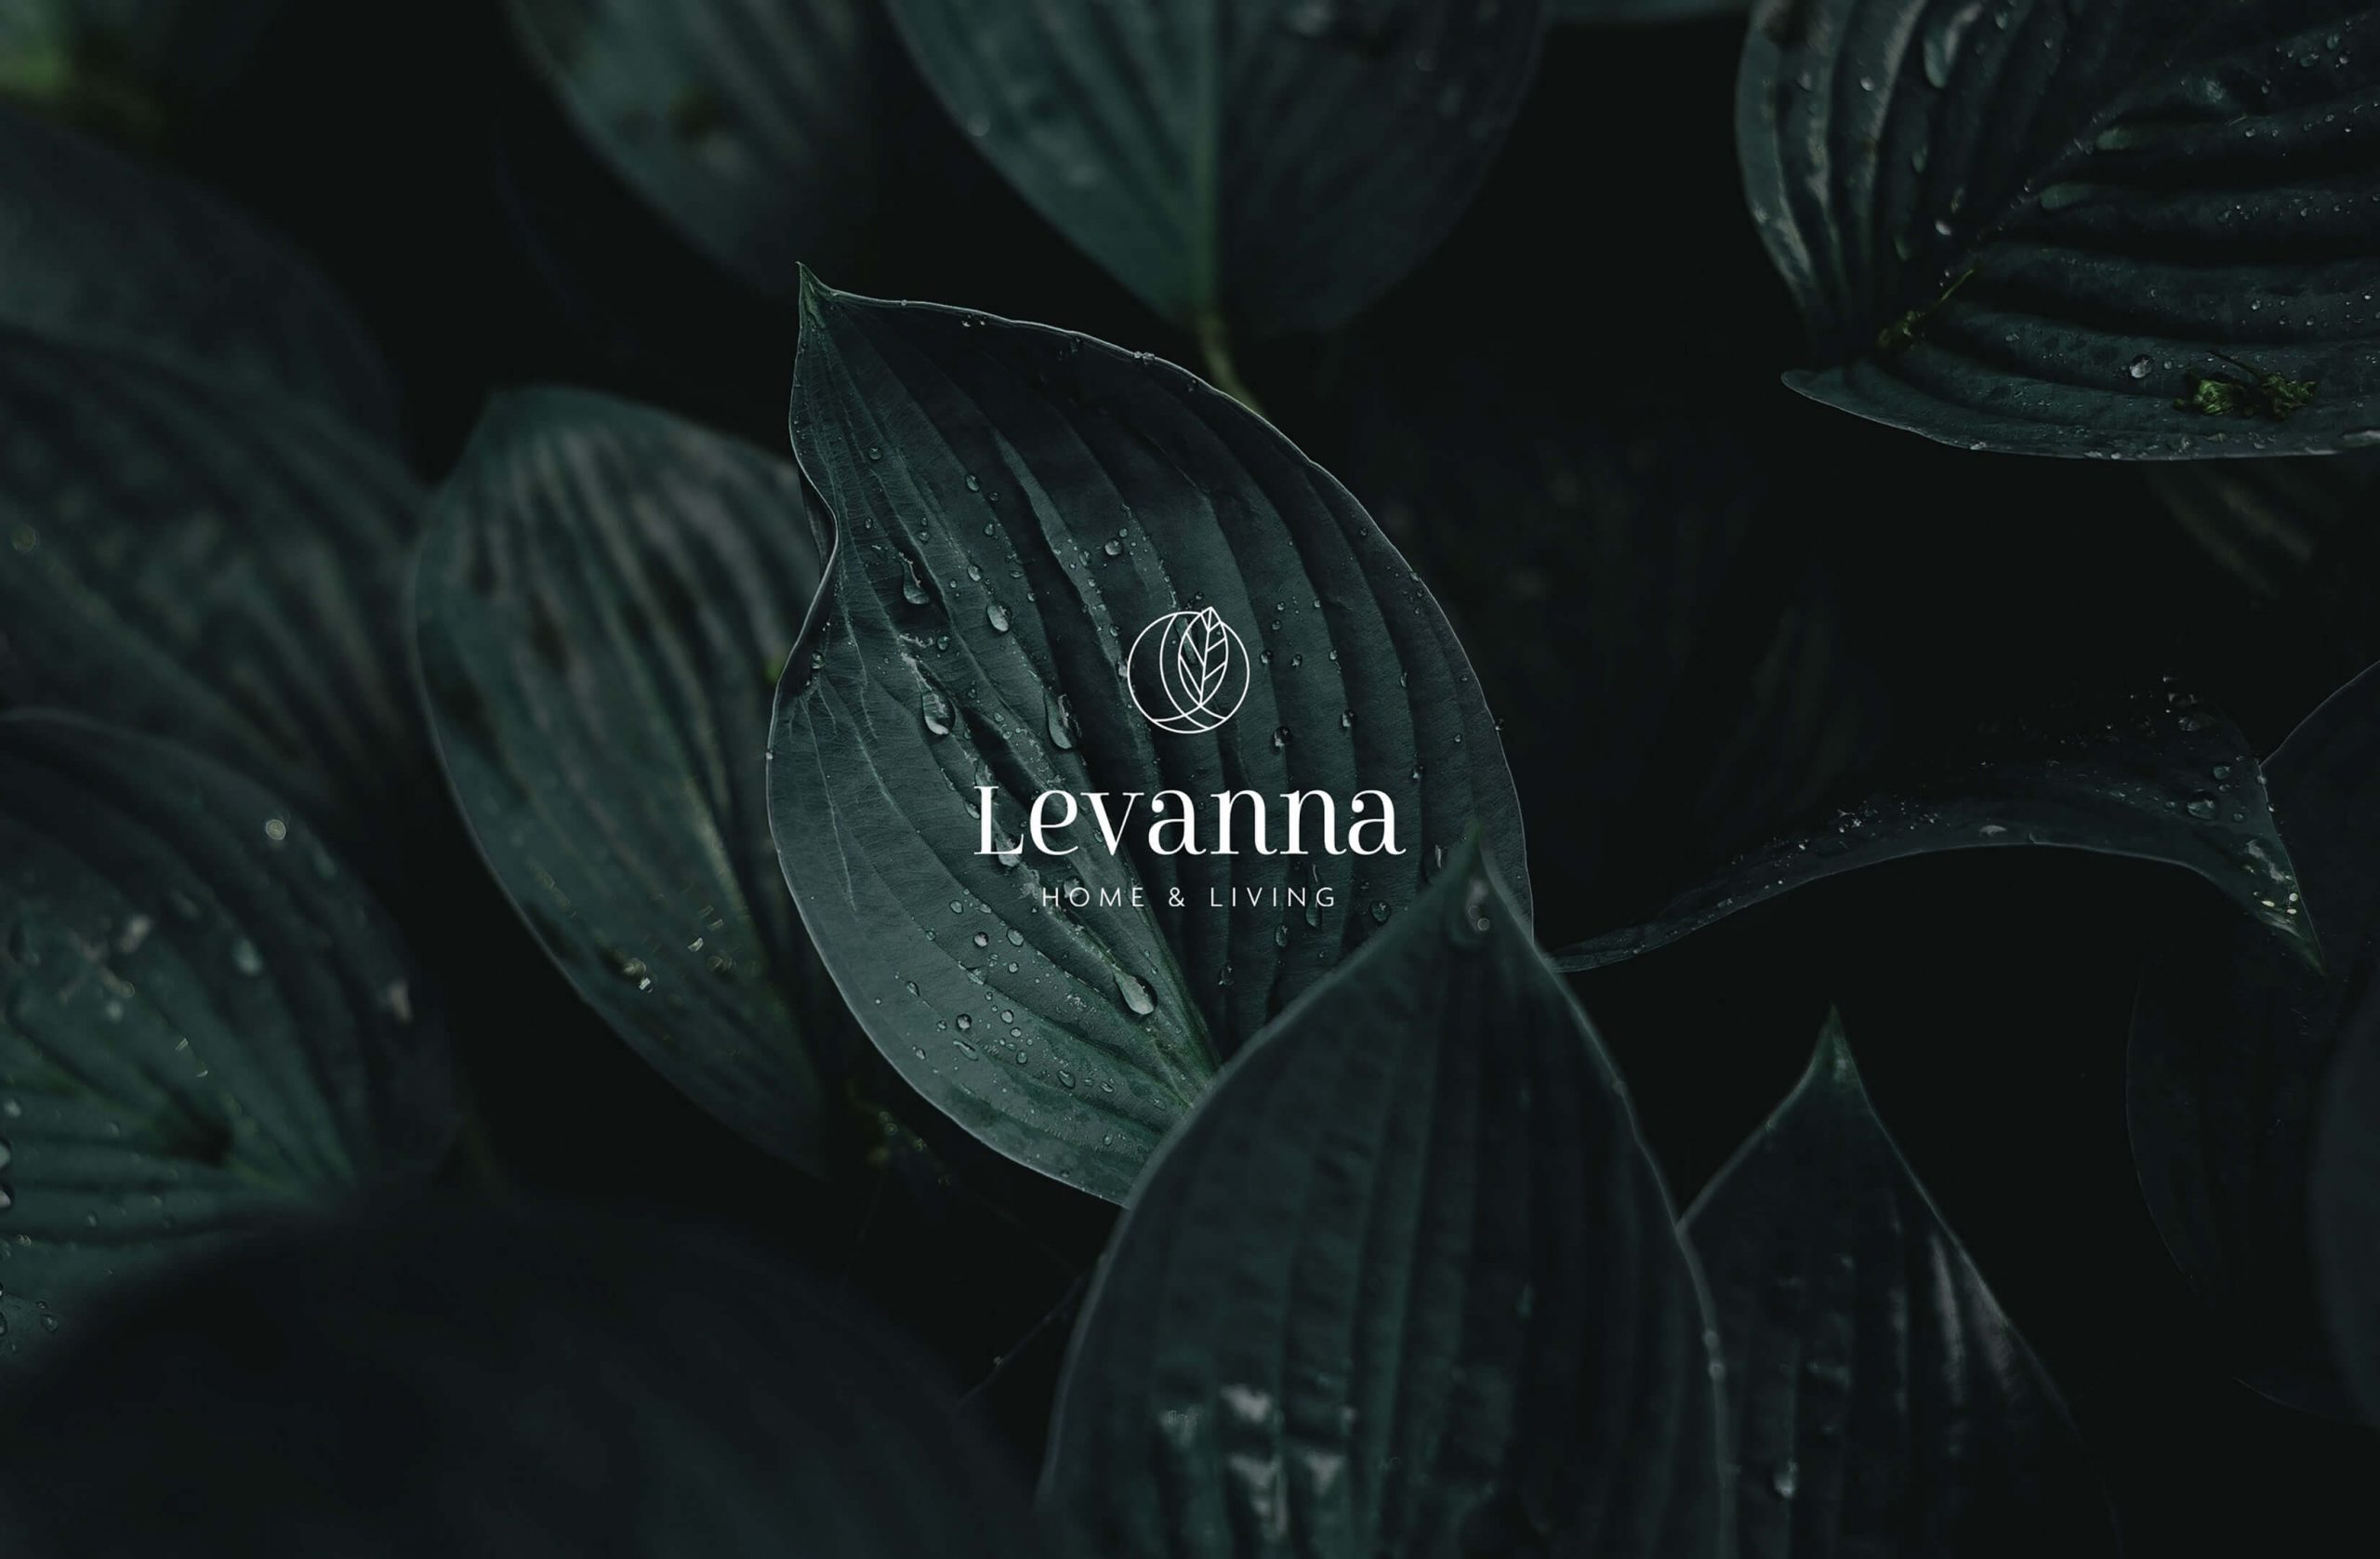 Levanna – Home & Living